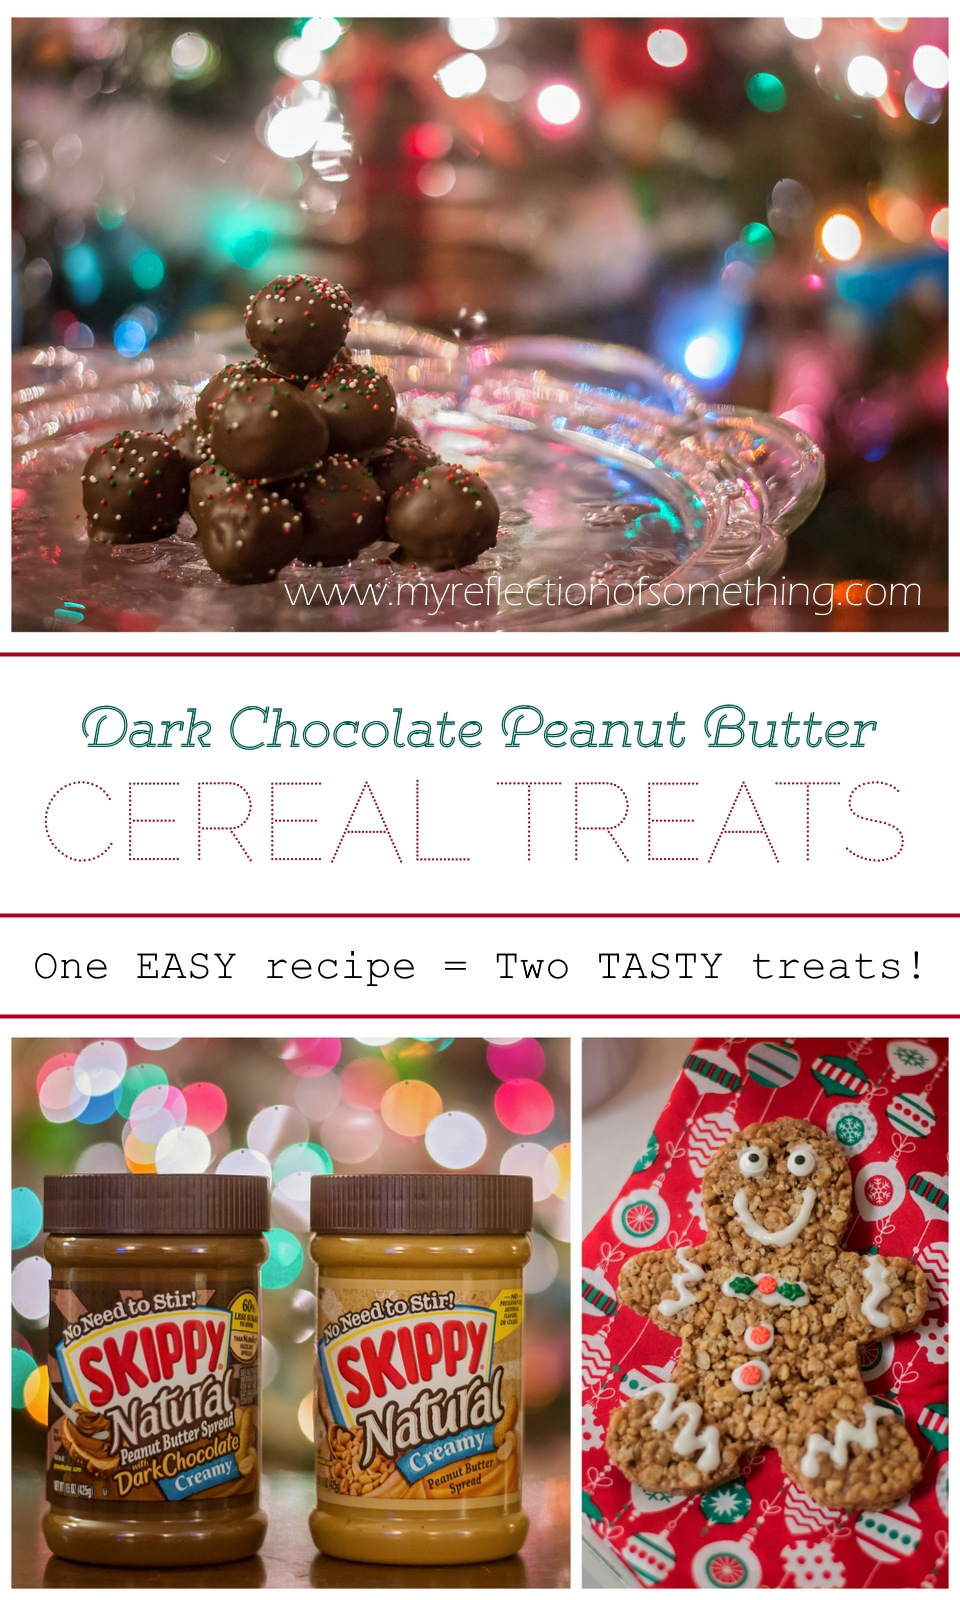 These quick and easy dark chocolate peanut butter cereal treats are the perfect choice for the holidays! One simple recipe gets you two fun and tasty desserts perfect for sharing! Add these to your Christmas cookie list, and grab a coupon for SKIPPY Natural to save on ingredients! #spon #SKIPPYYIPPEE